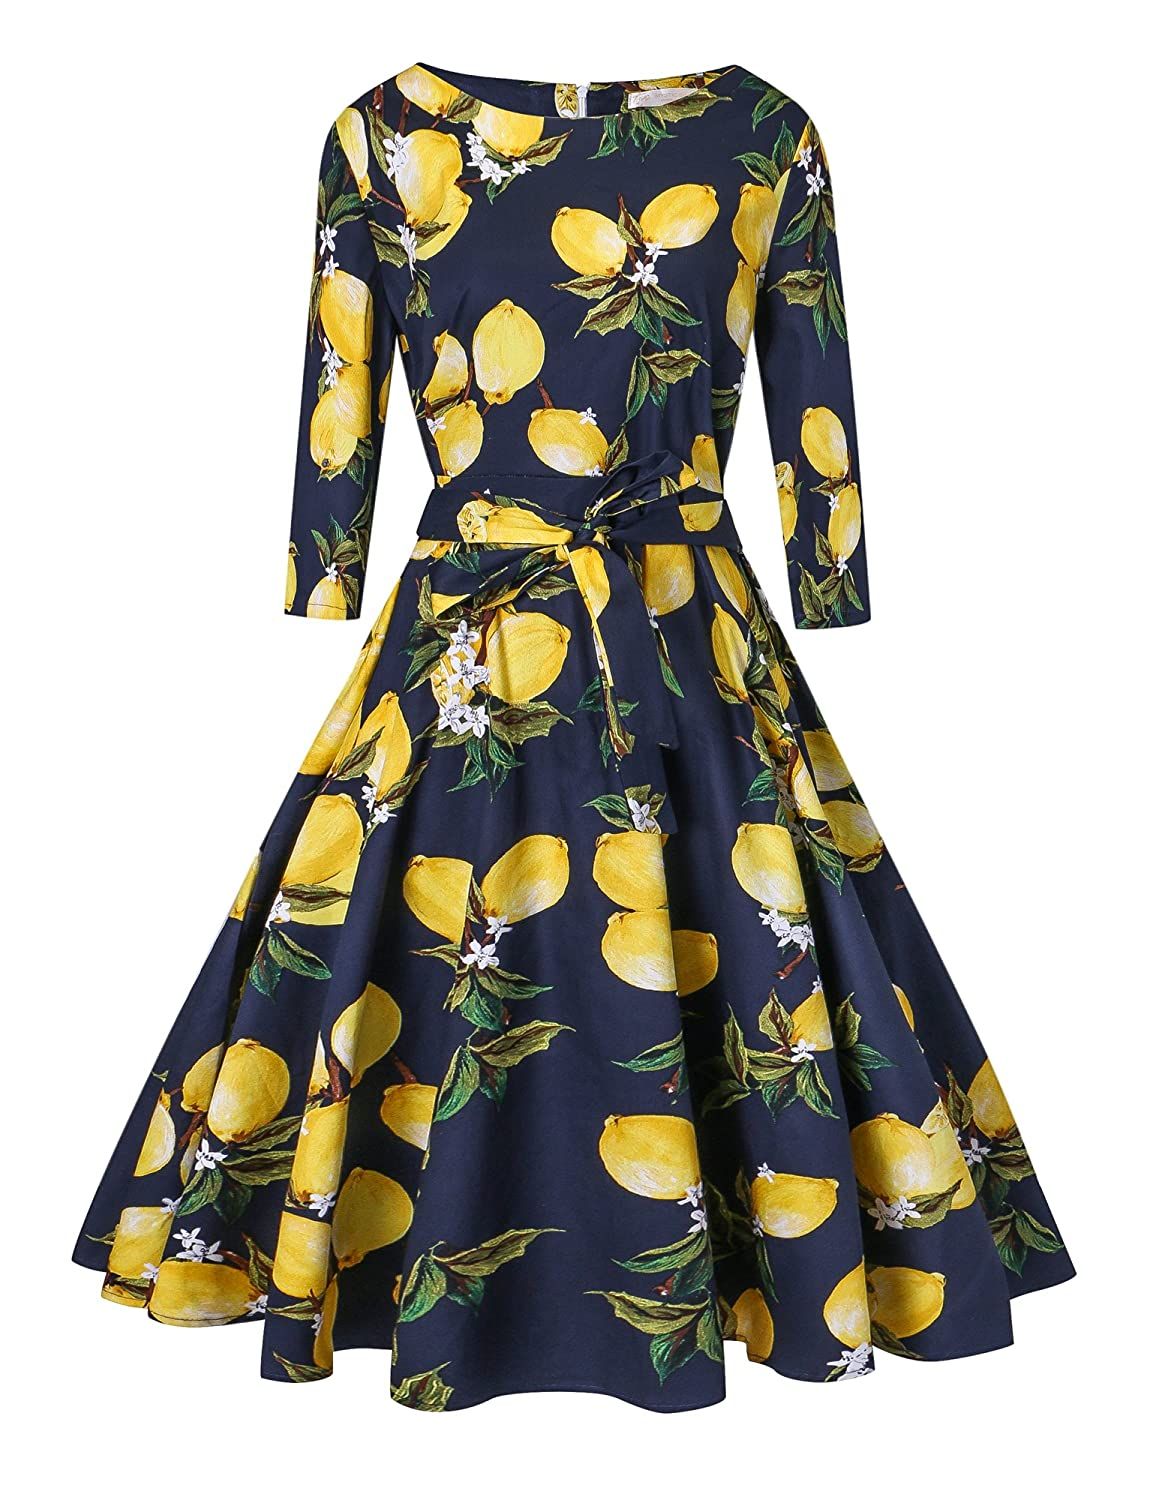 1950's Long Sleeve Retro Floral Vintage Dress with Defined Waist Design